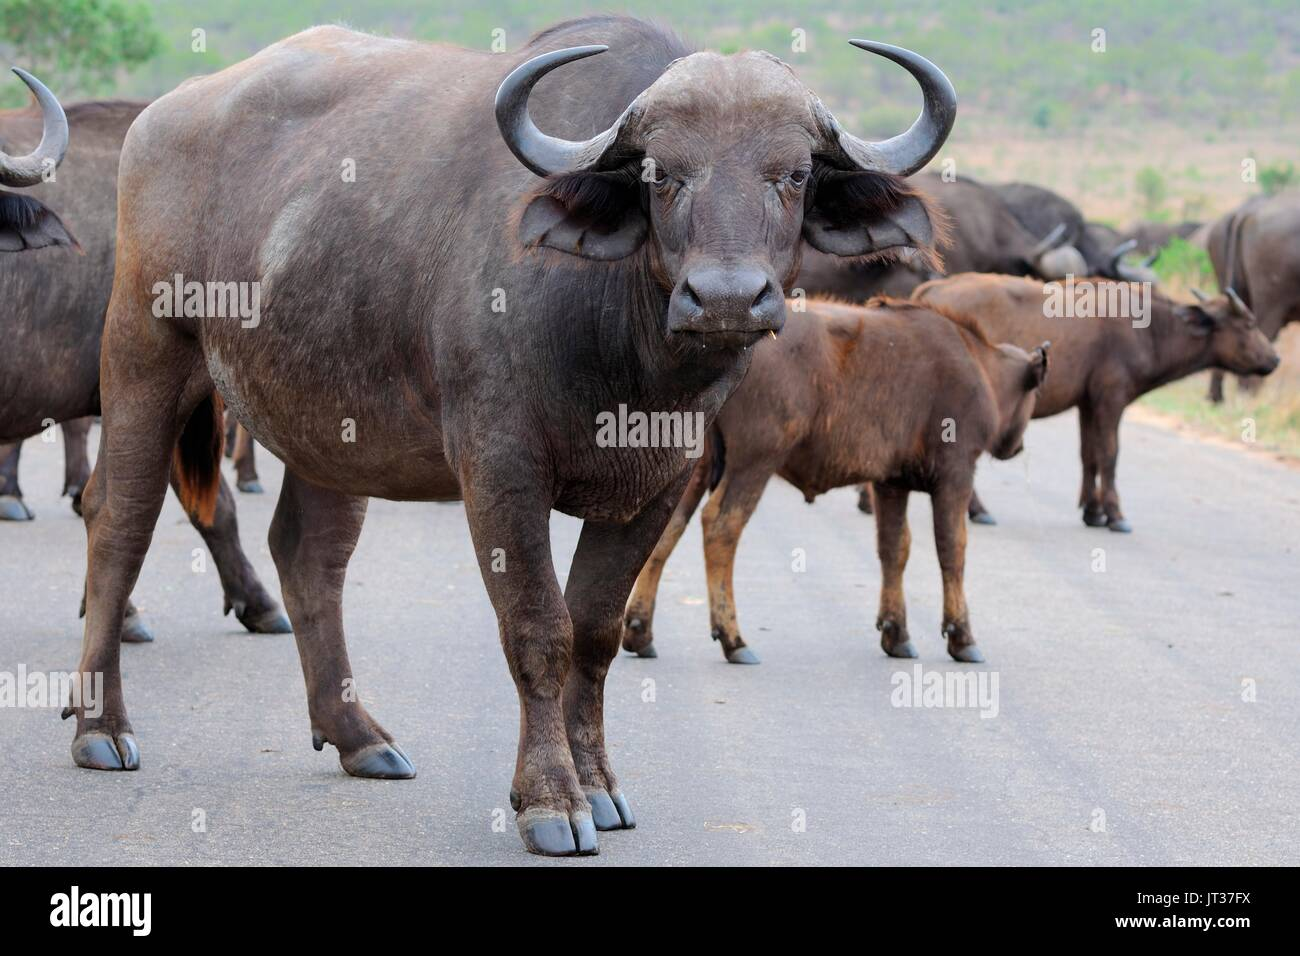 African buffaloes or Cape buffaloes (Syncerus caffer), herd crossing a paved road, Kruger National Park, South Africa, Africa - Stock Image